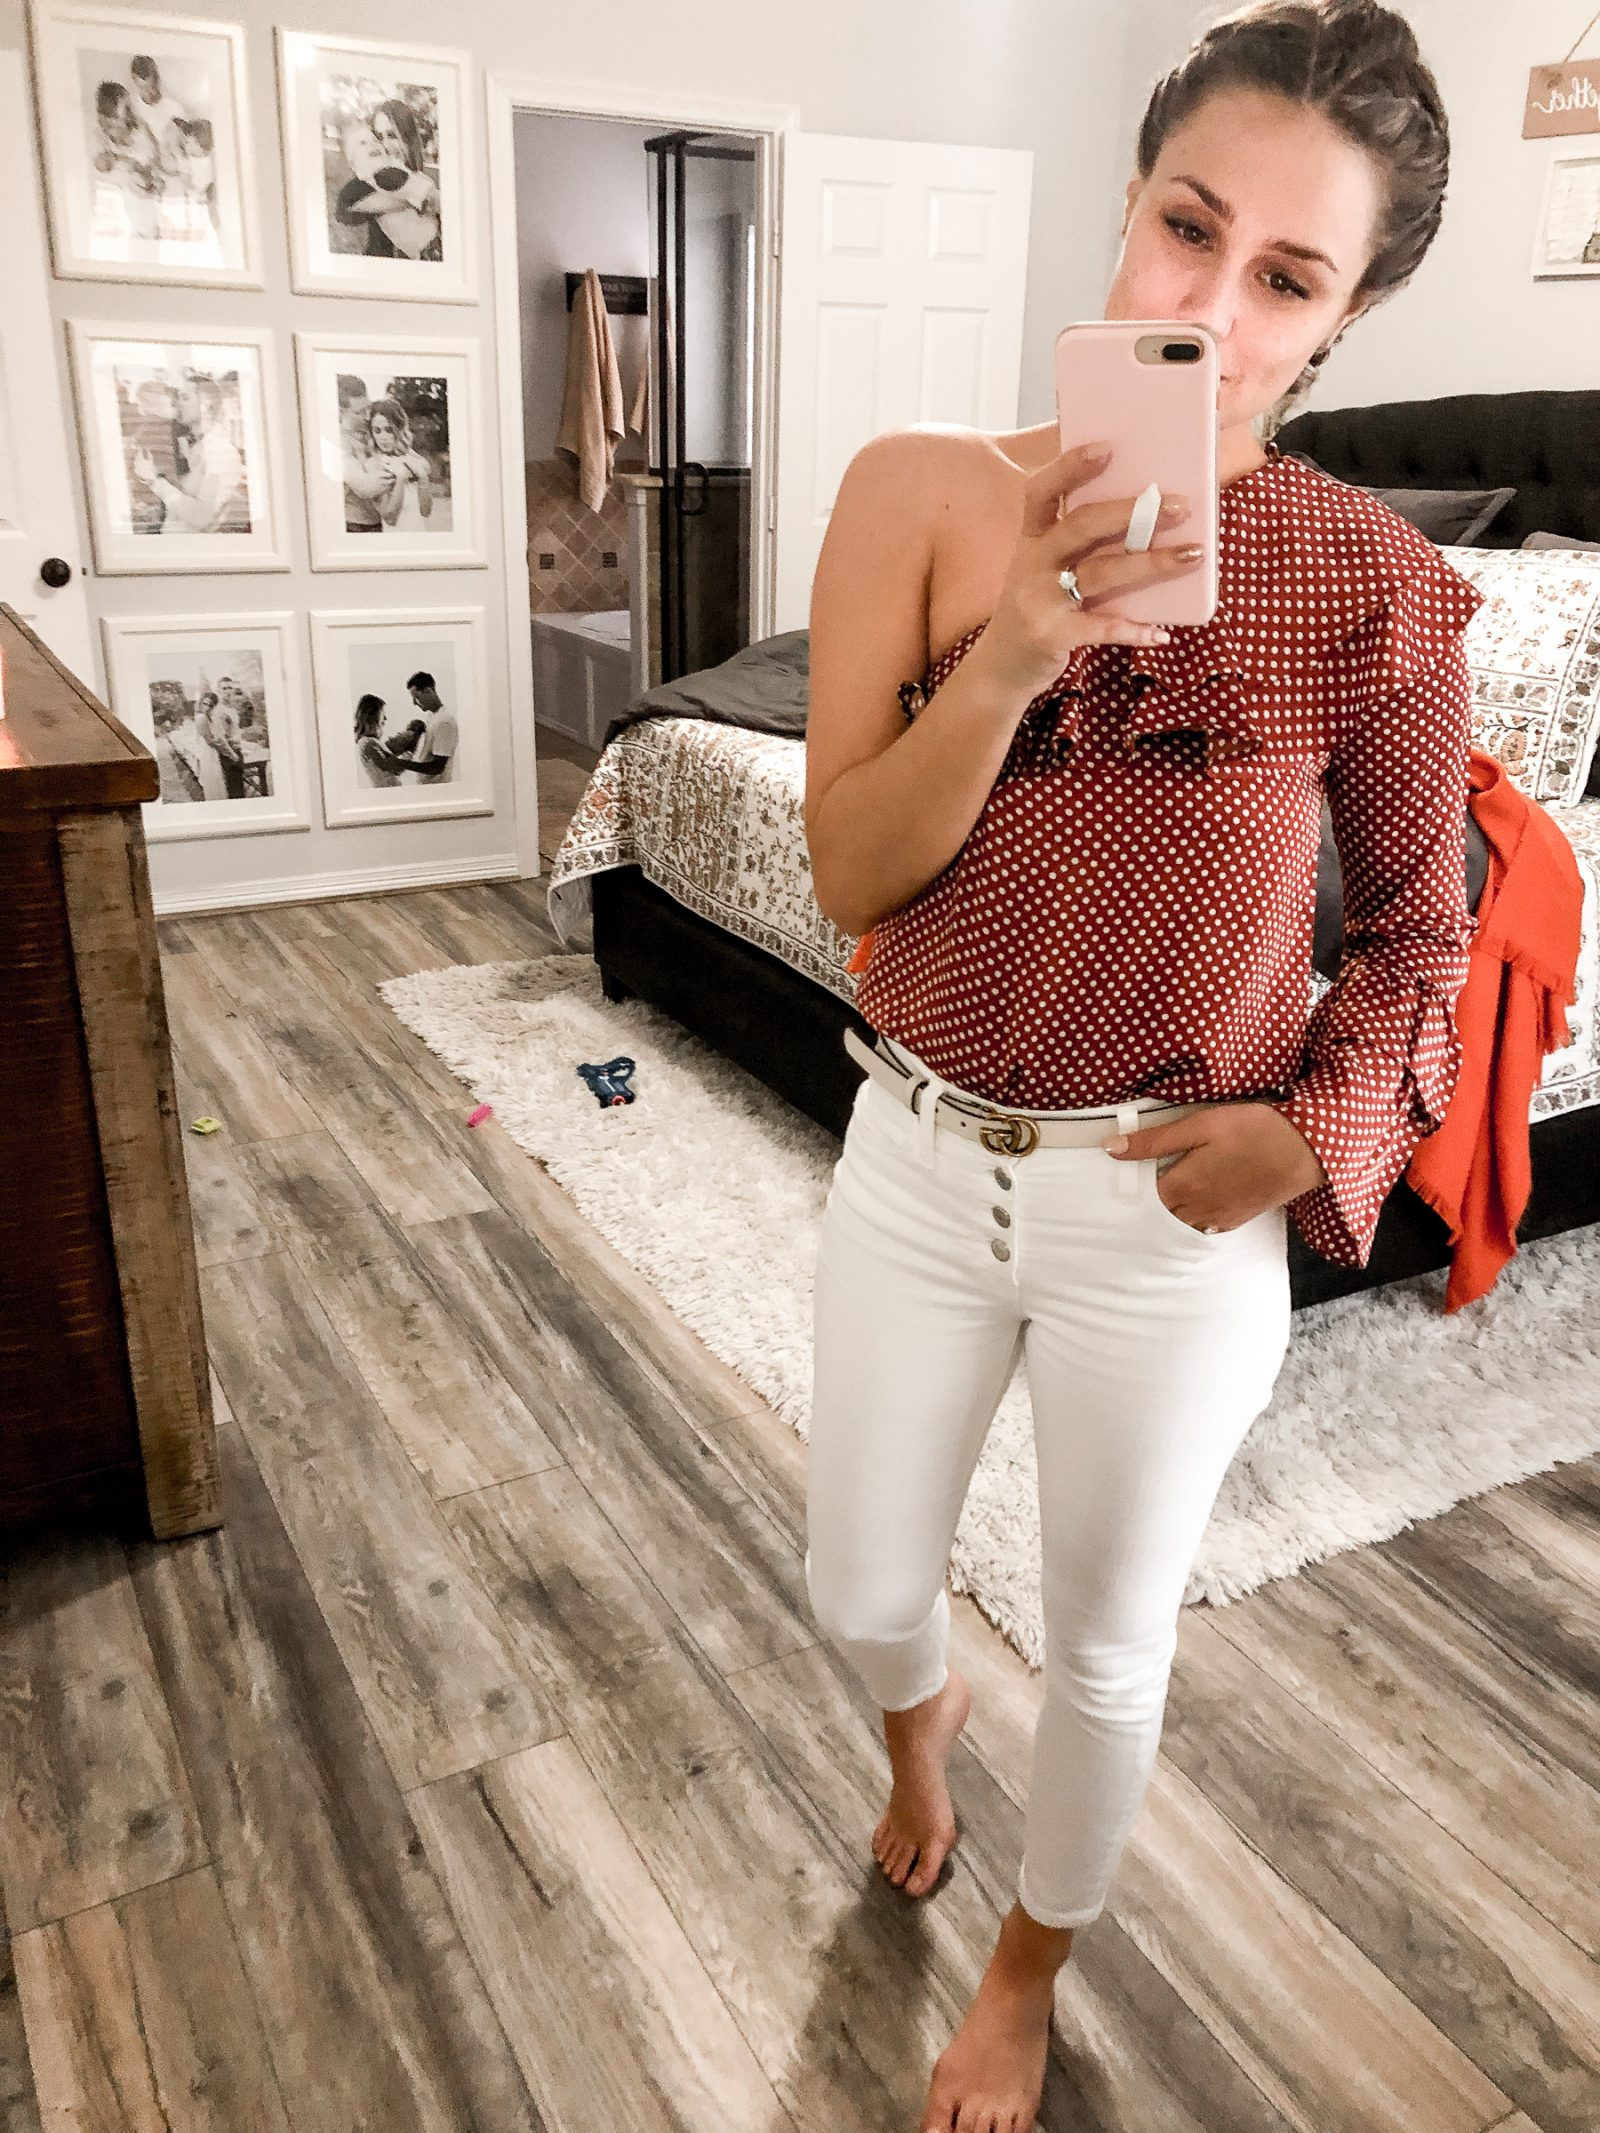 Houston Fashion blogger Uptown with Elly Brown wears white denim and a polka dot top